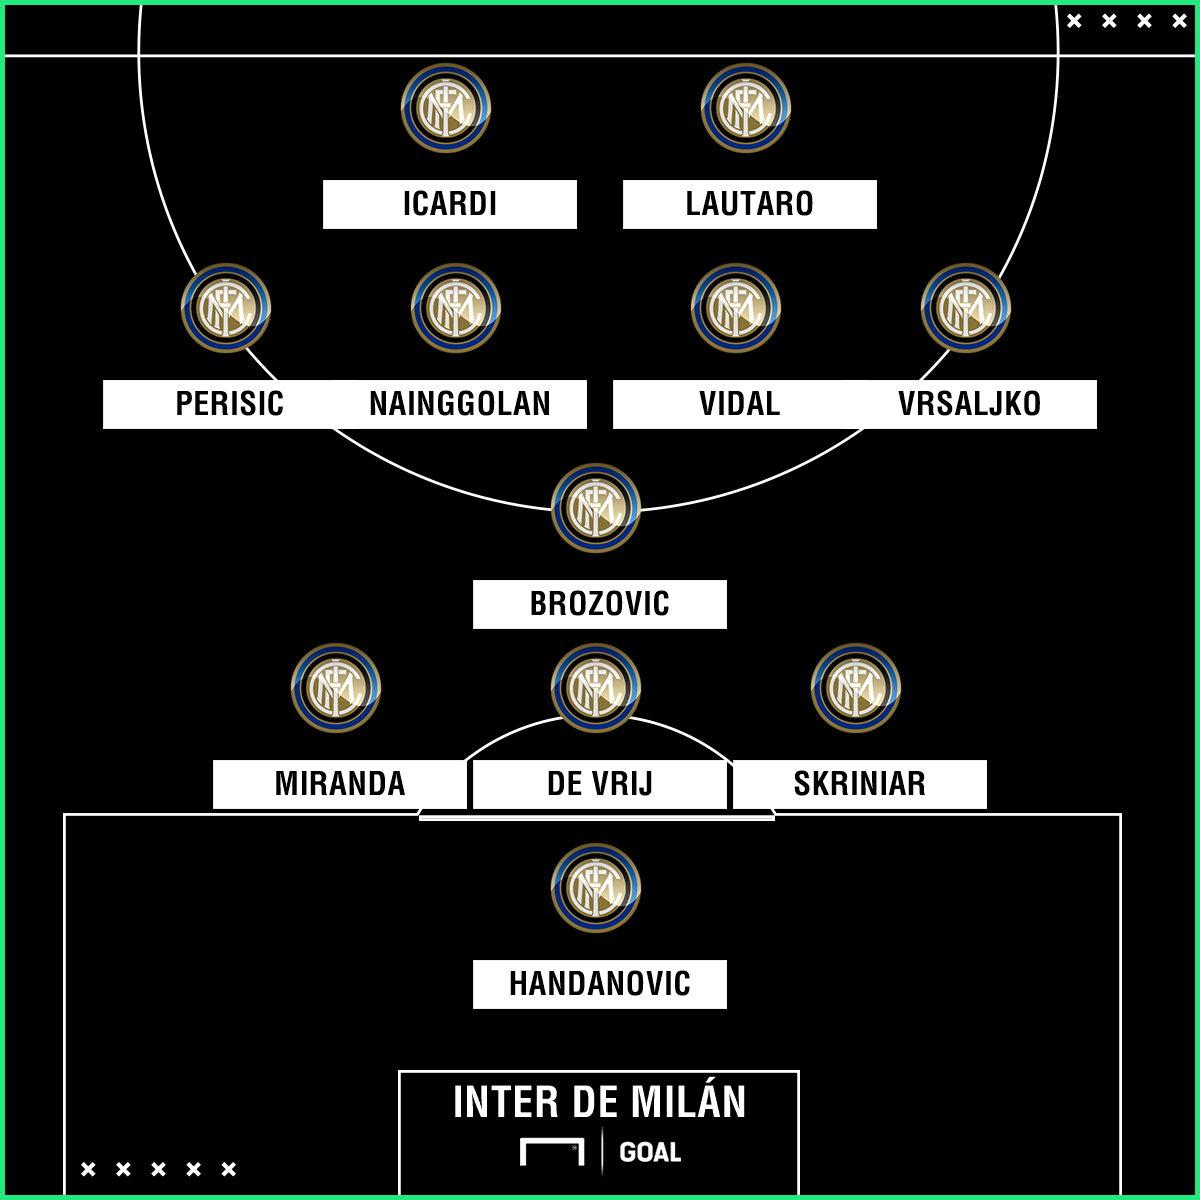 PS Inter de Milán (Vidal)